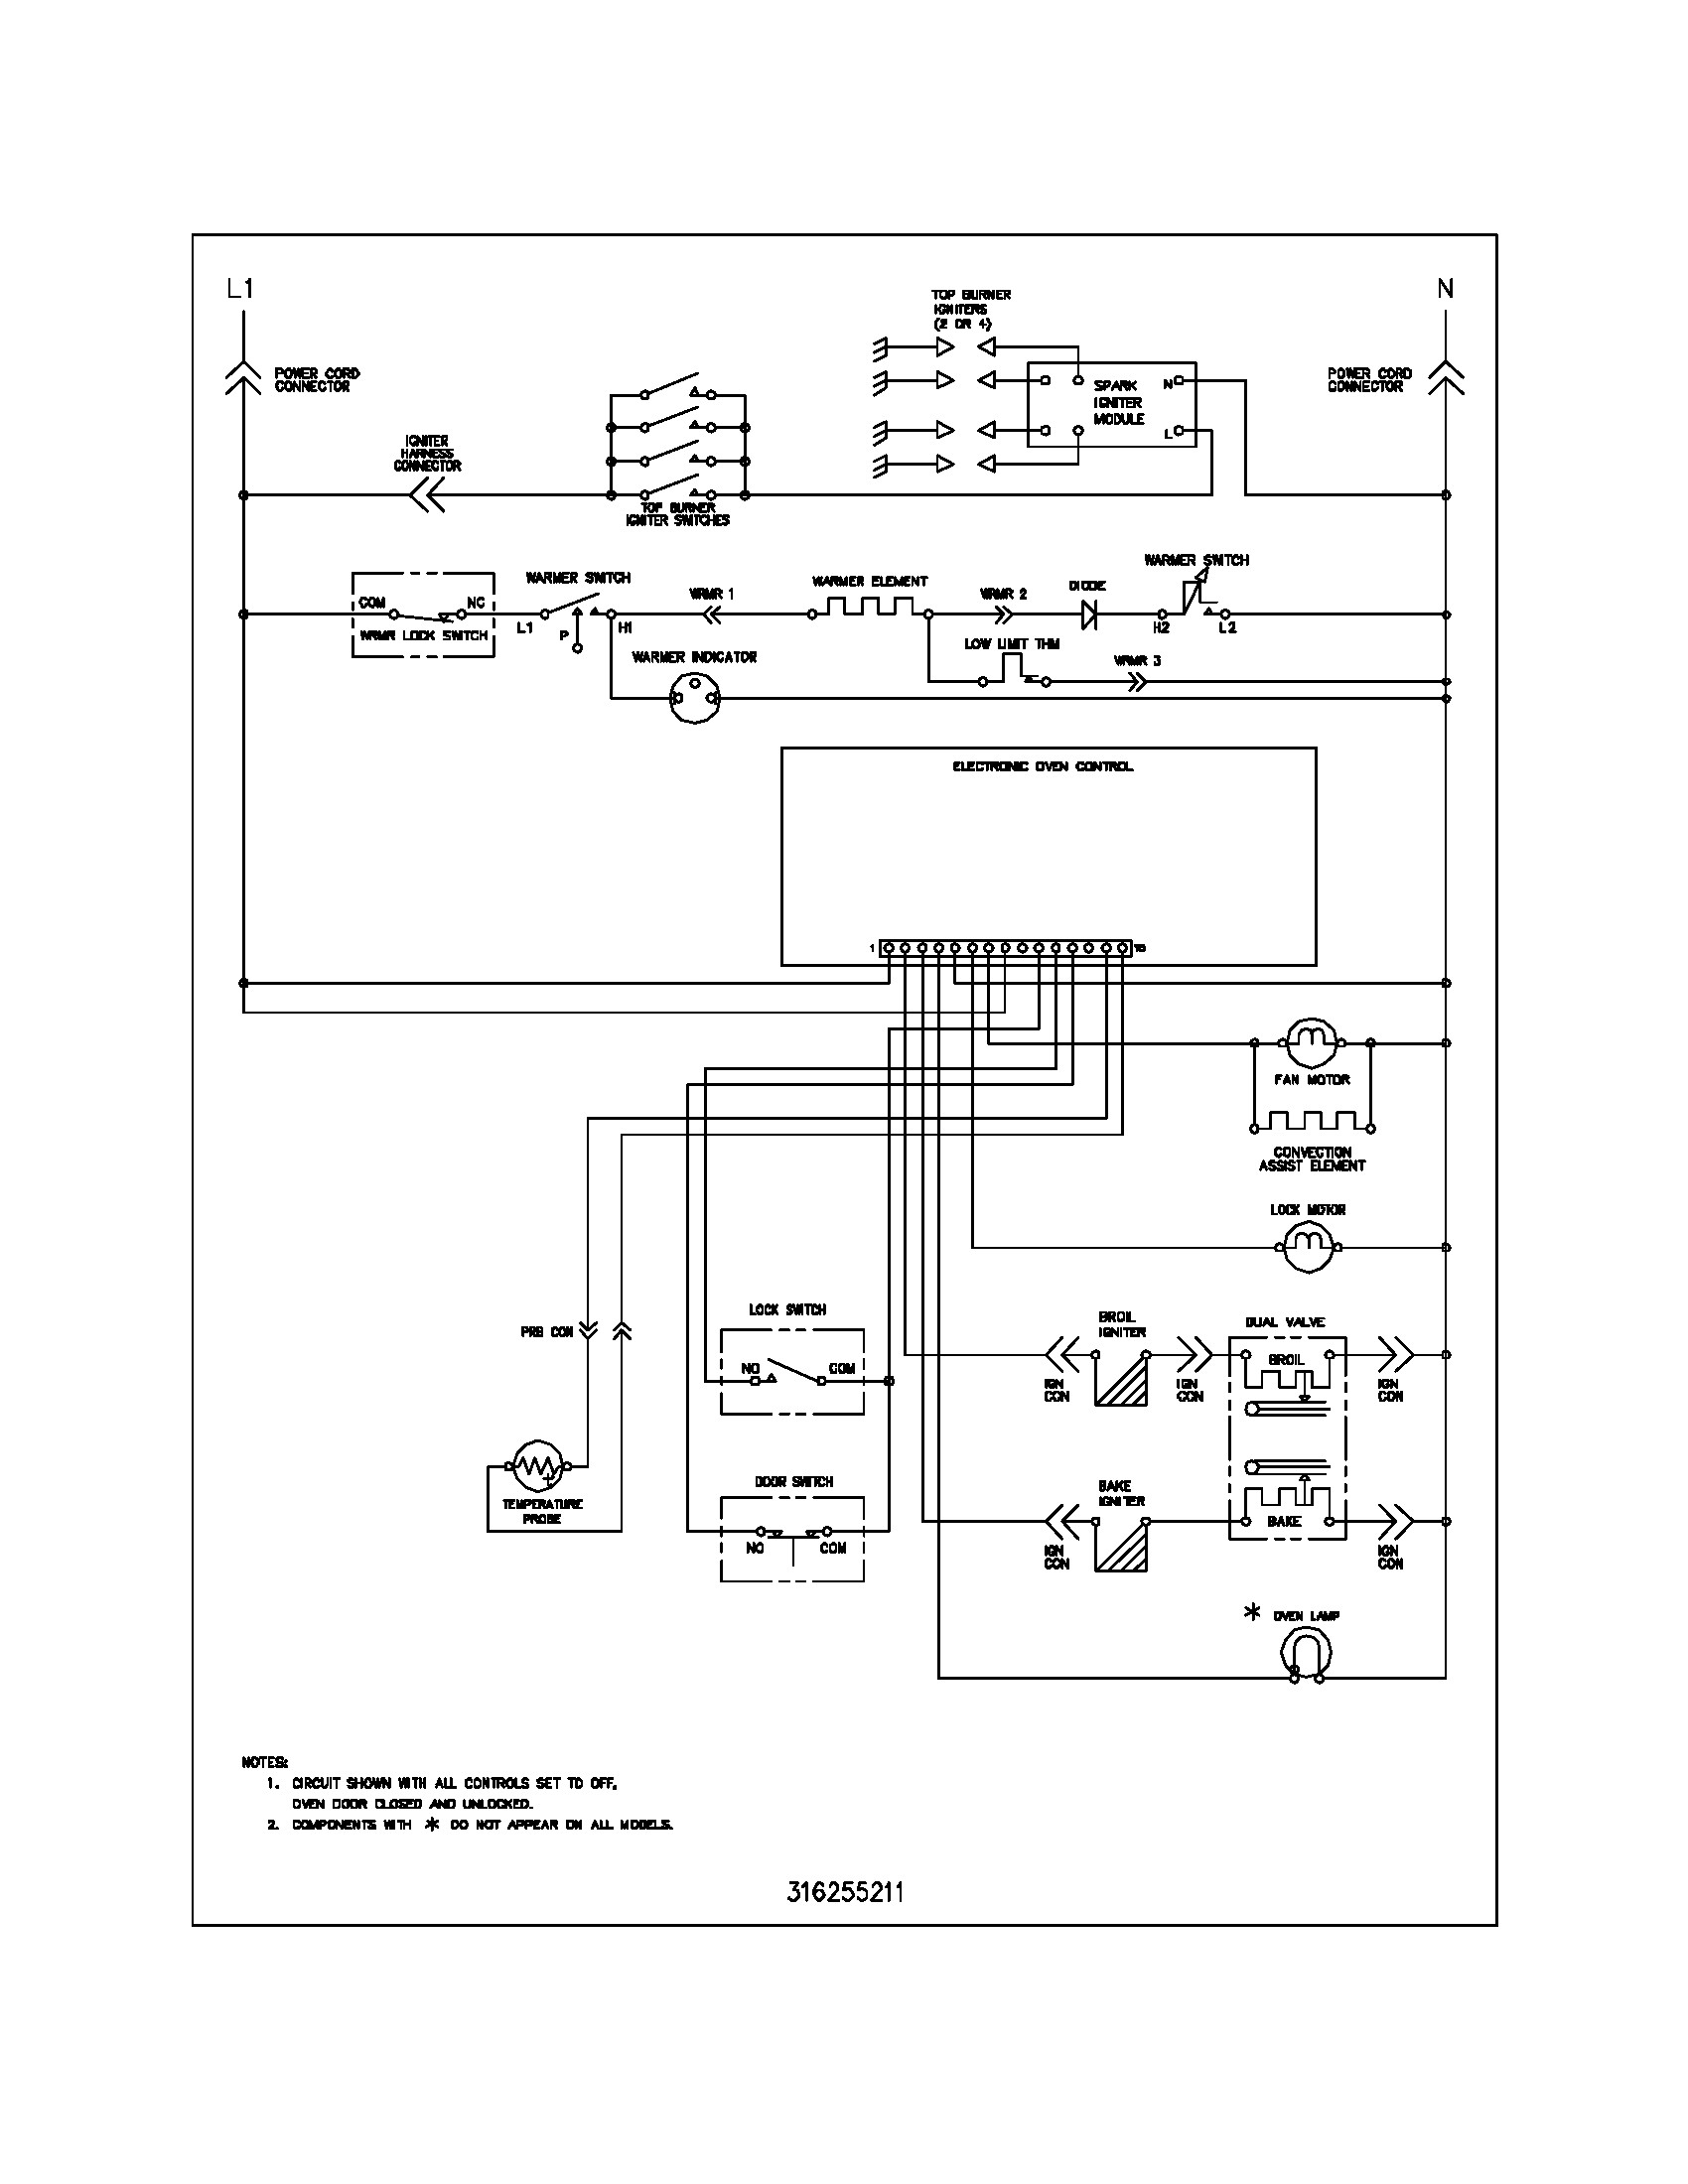 coleman electric furnace wiring diagram | wirings diagram on voltage  converter wiring diagram, central heating